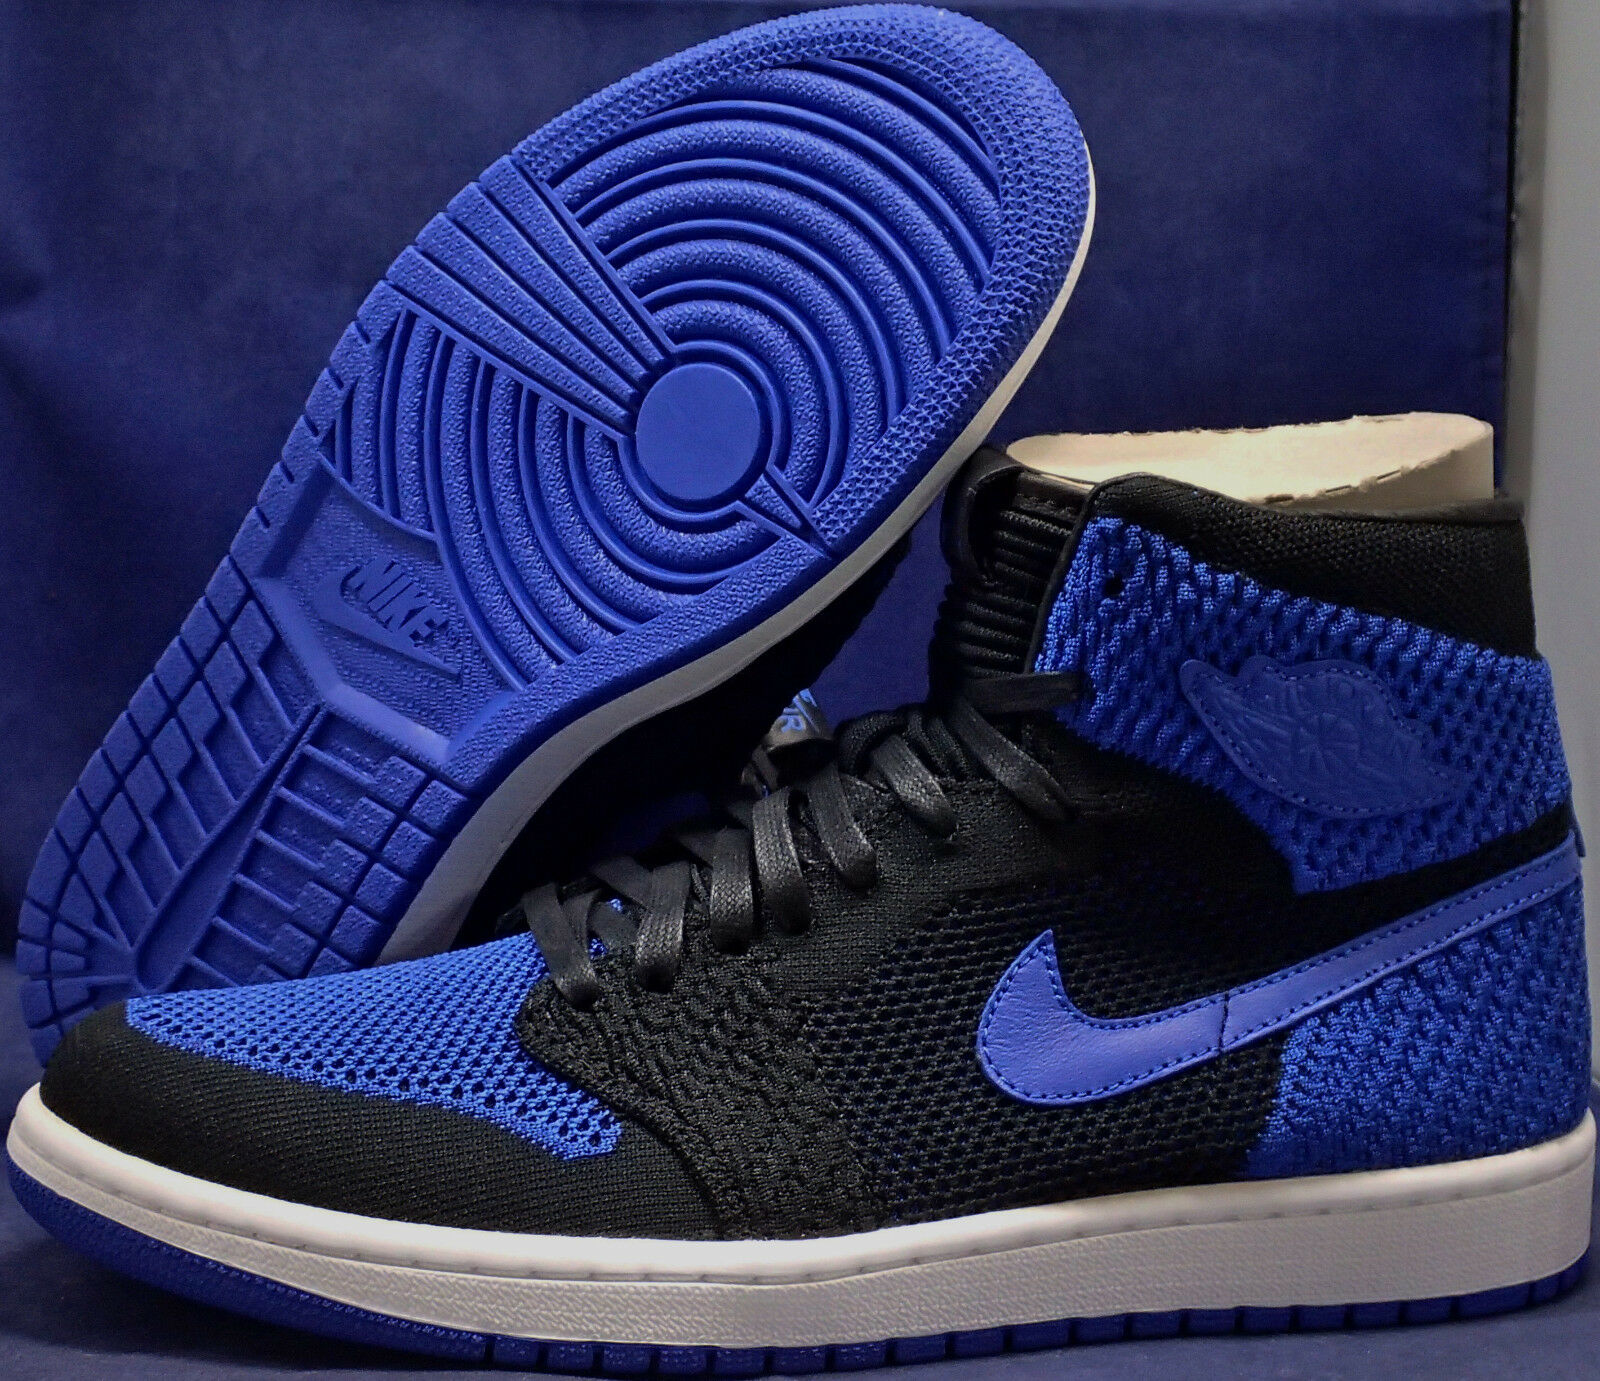 Nike Air Jordan 1 Retro Hi Flyknit Black Game Royal High SZ 11.5 ( 919704-006 )